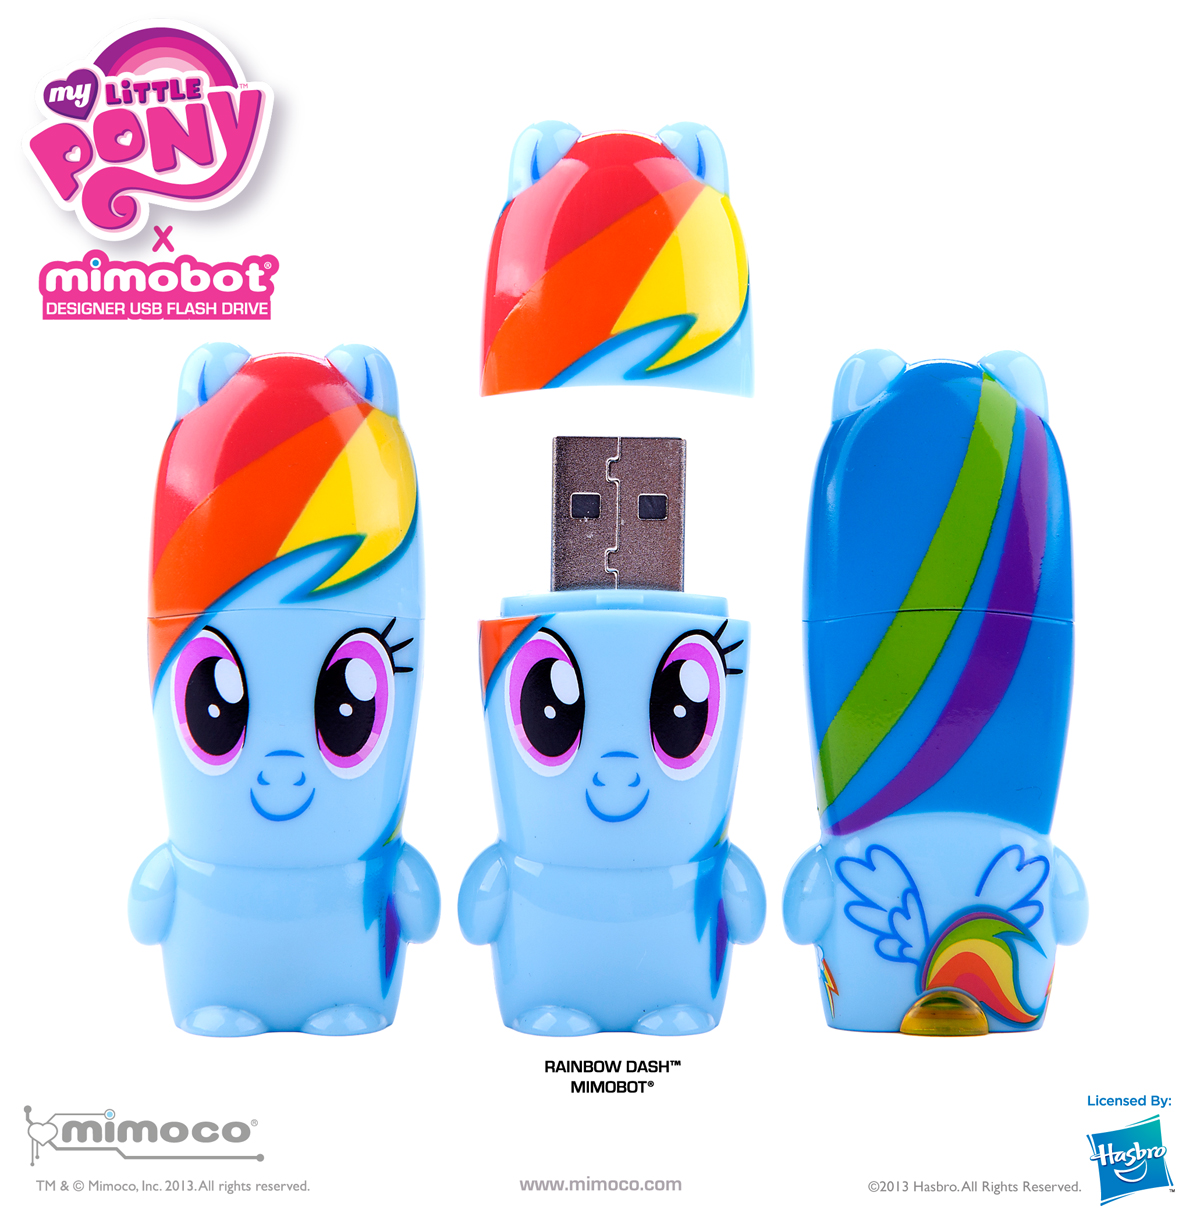 rainbow dash is so fast she gives mimoco s high